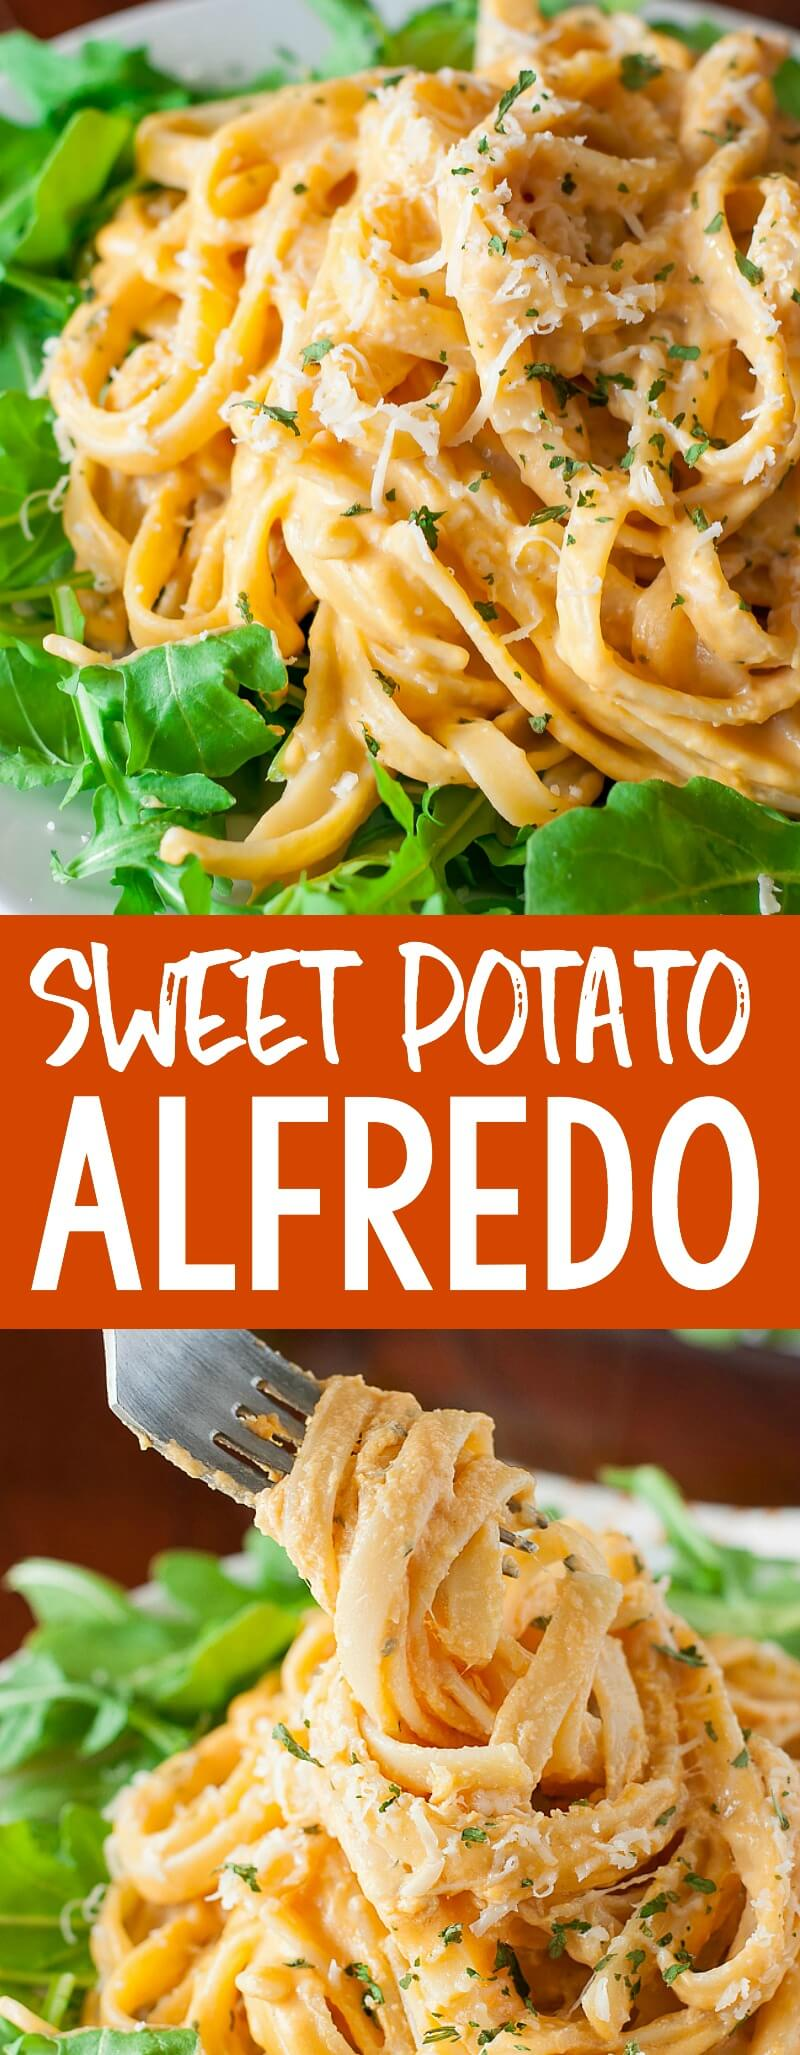 This quick and easy Sweet Potato Alfredo is a tasty twist on a comfort food classic! #pasta #alfredo #sweetpotato #comfortfood #pastanight #fall #fallrecipes #dinner